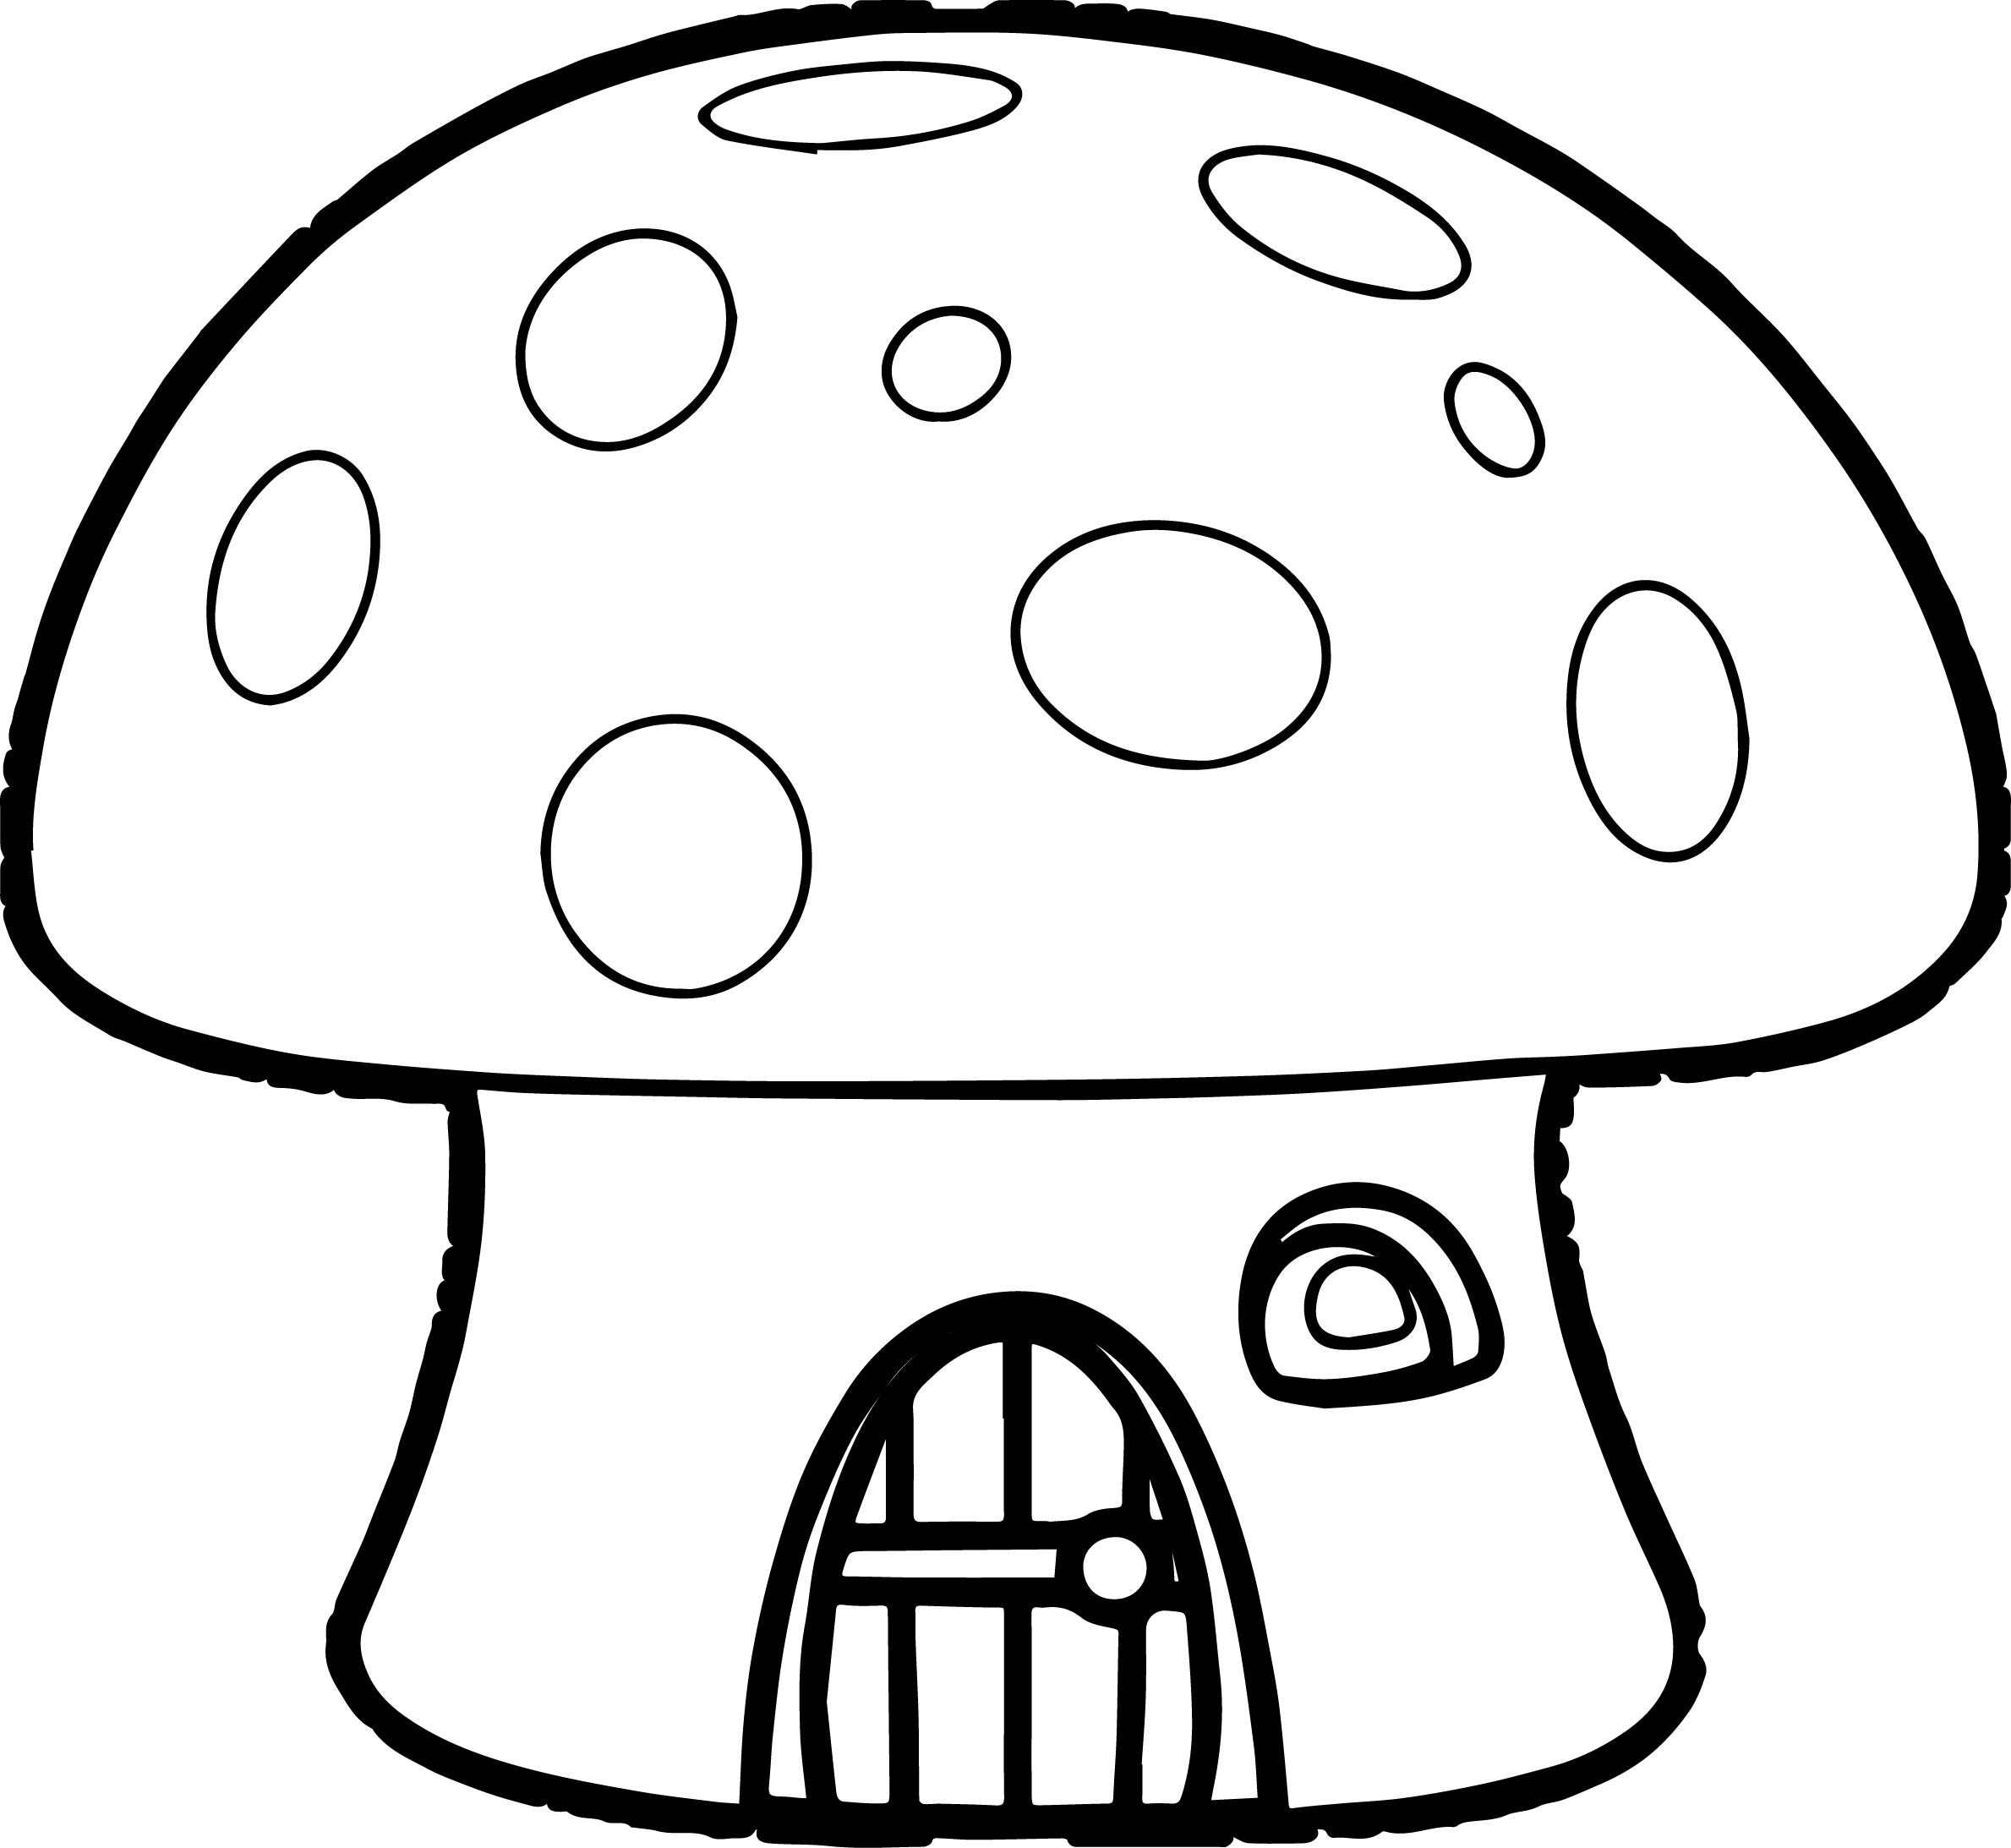 2379x2186 Mushrooms House Coloring Page For Kids New Coloring Pages Mushroom